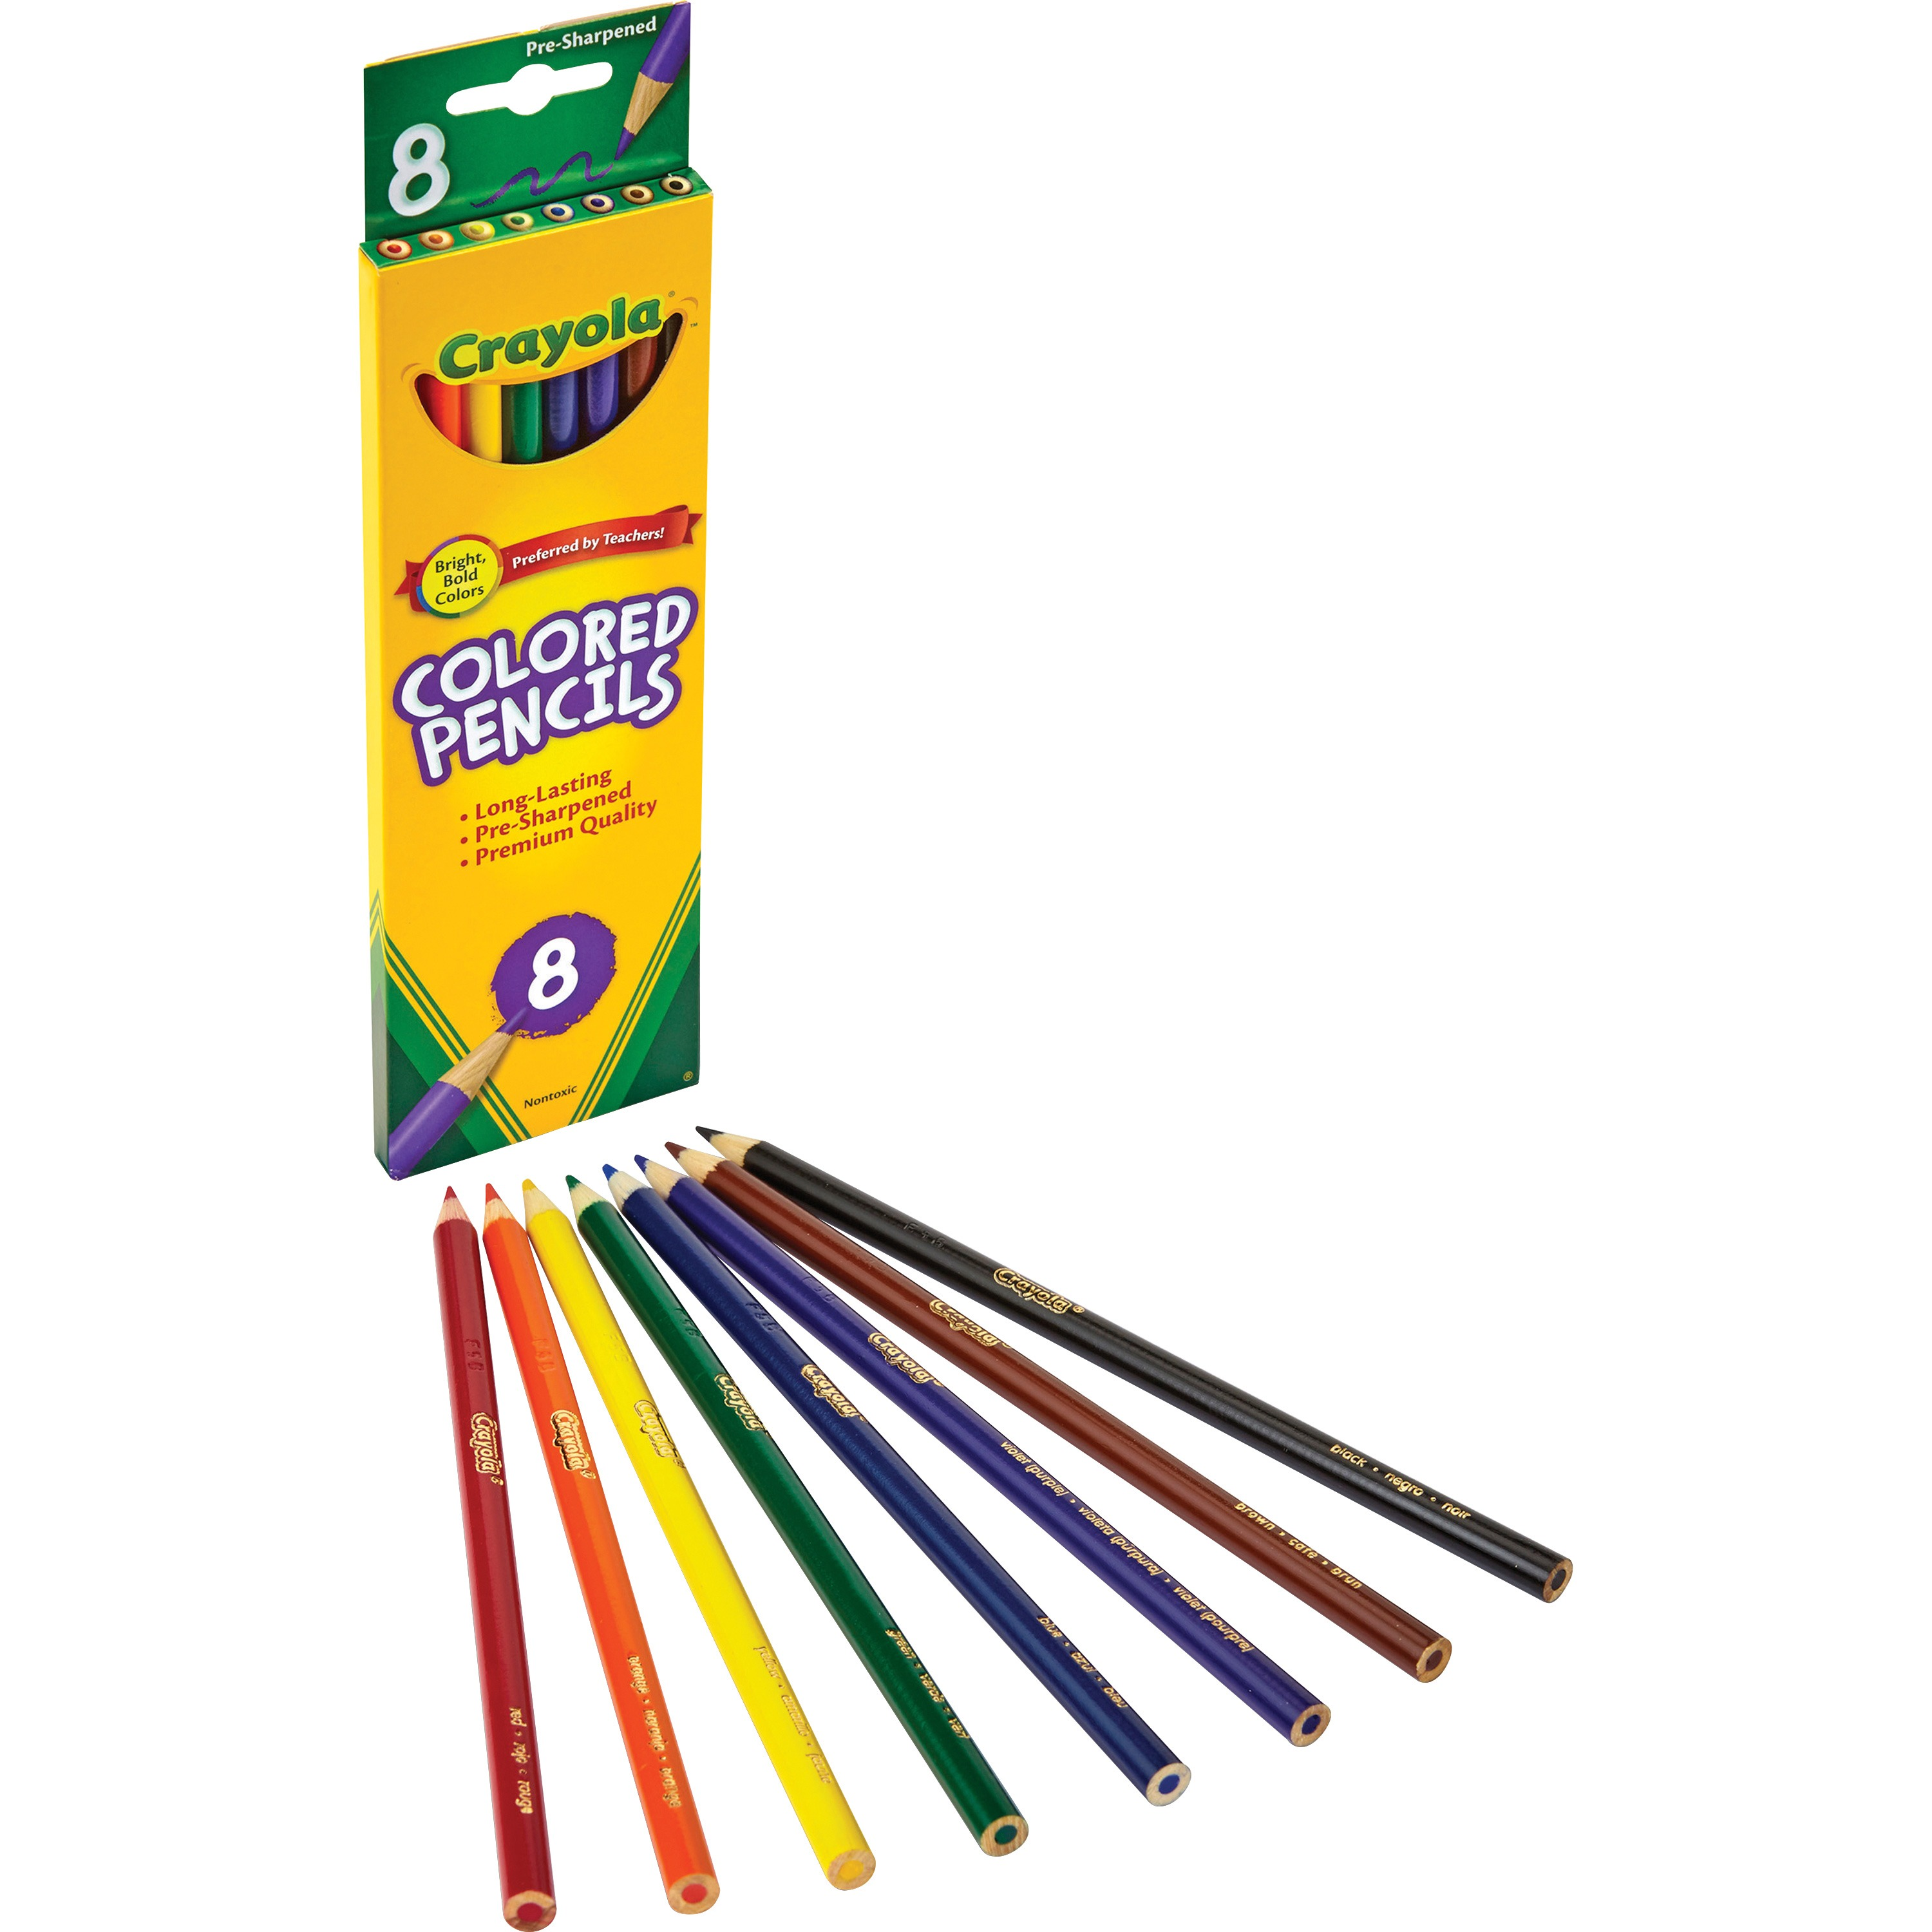 Crayola Colored Pencils, 8-count by Crayola, LLC